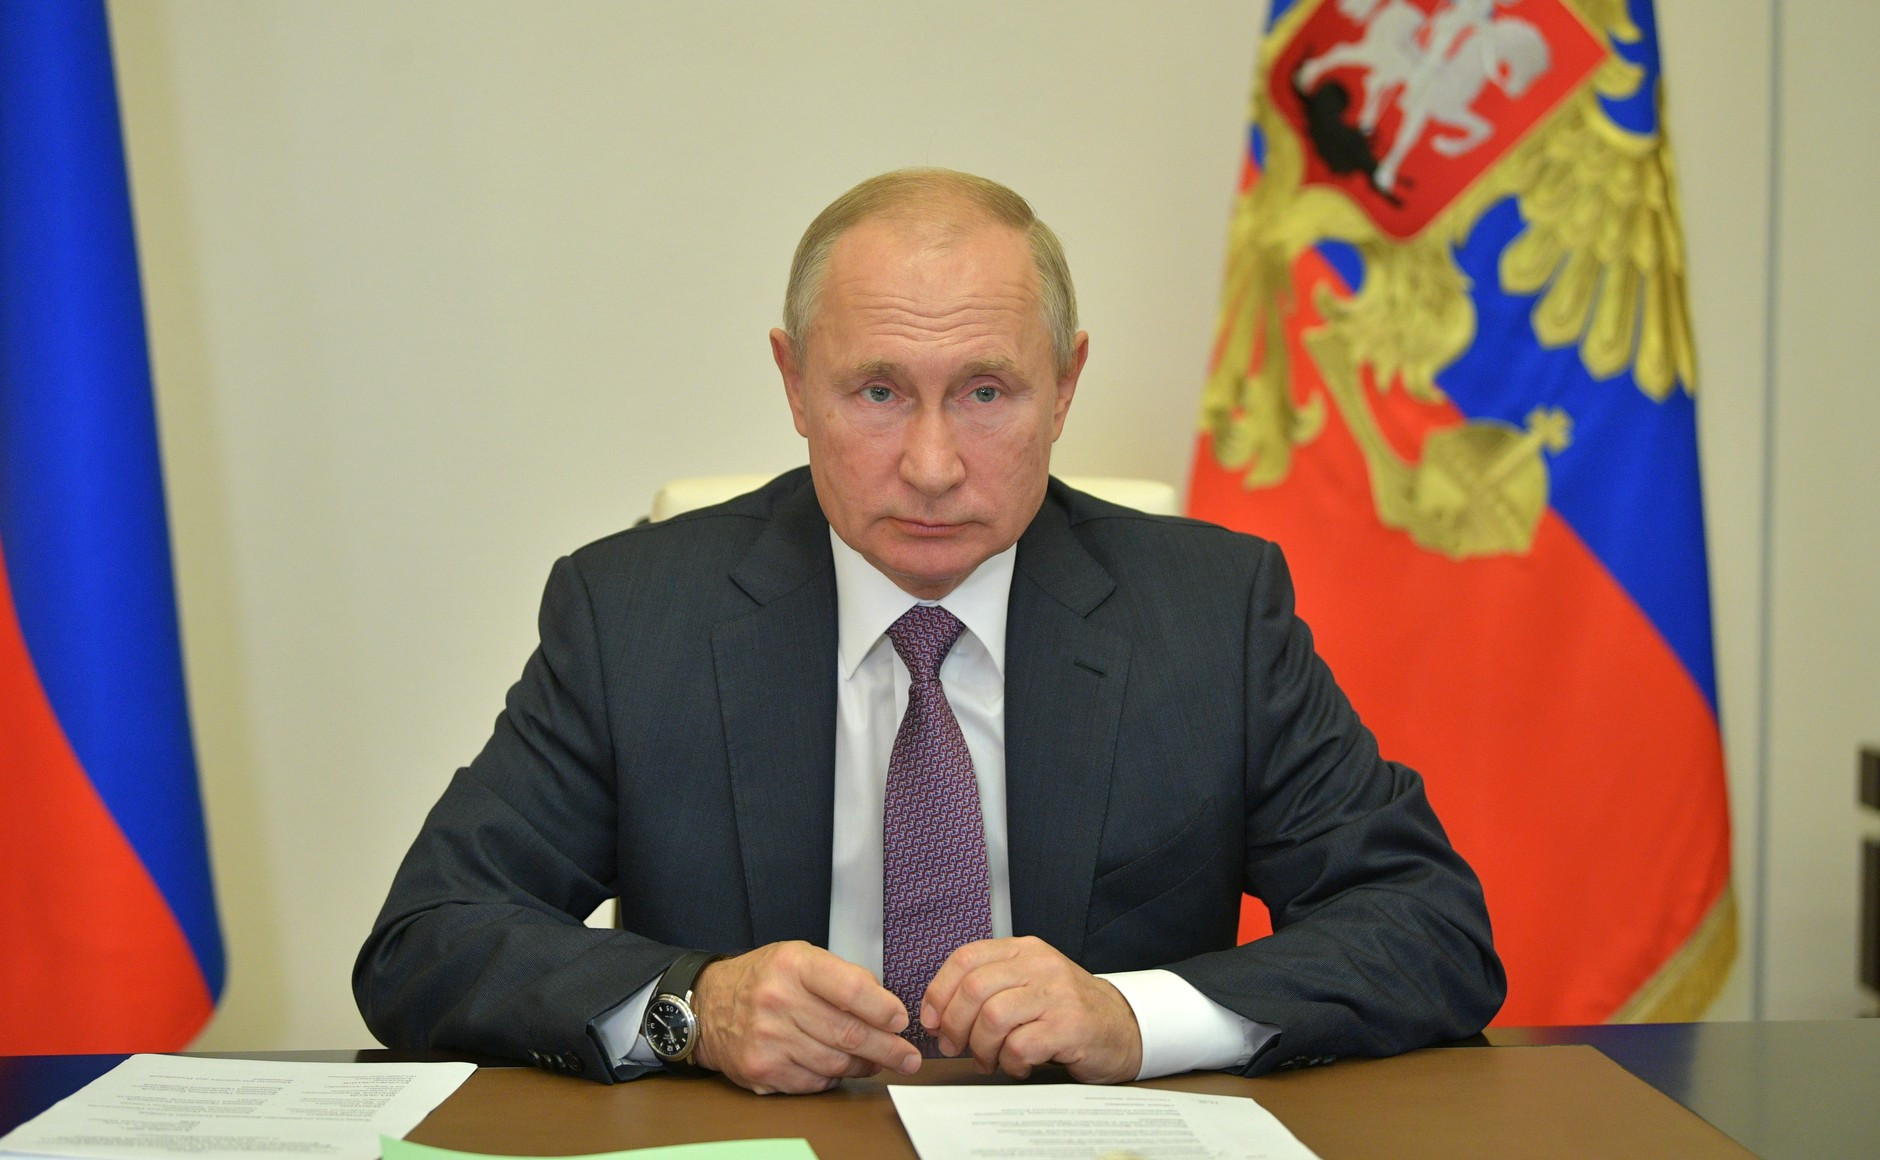 Russian President Vladimir Putin has said that the sanctions applied by WADA against Russian athletes are